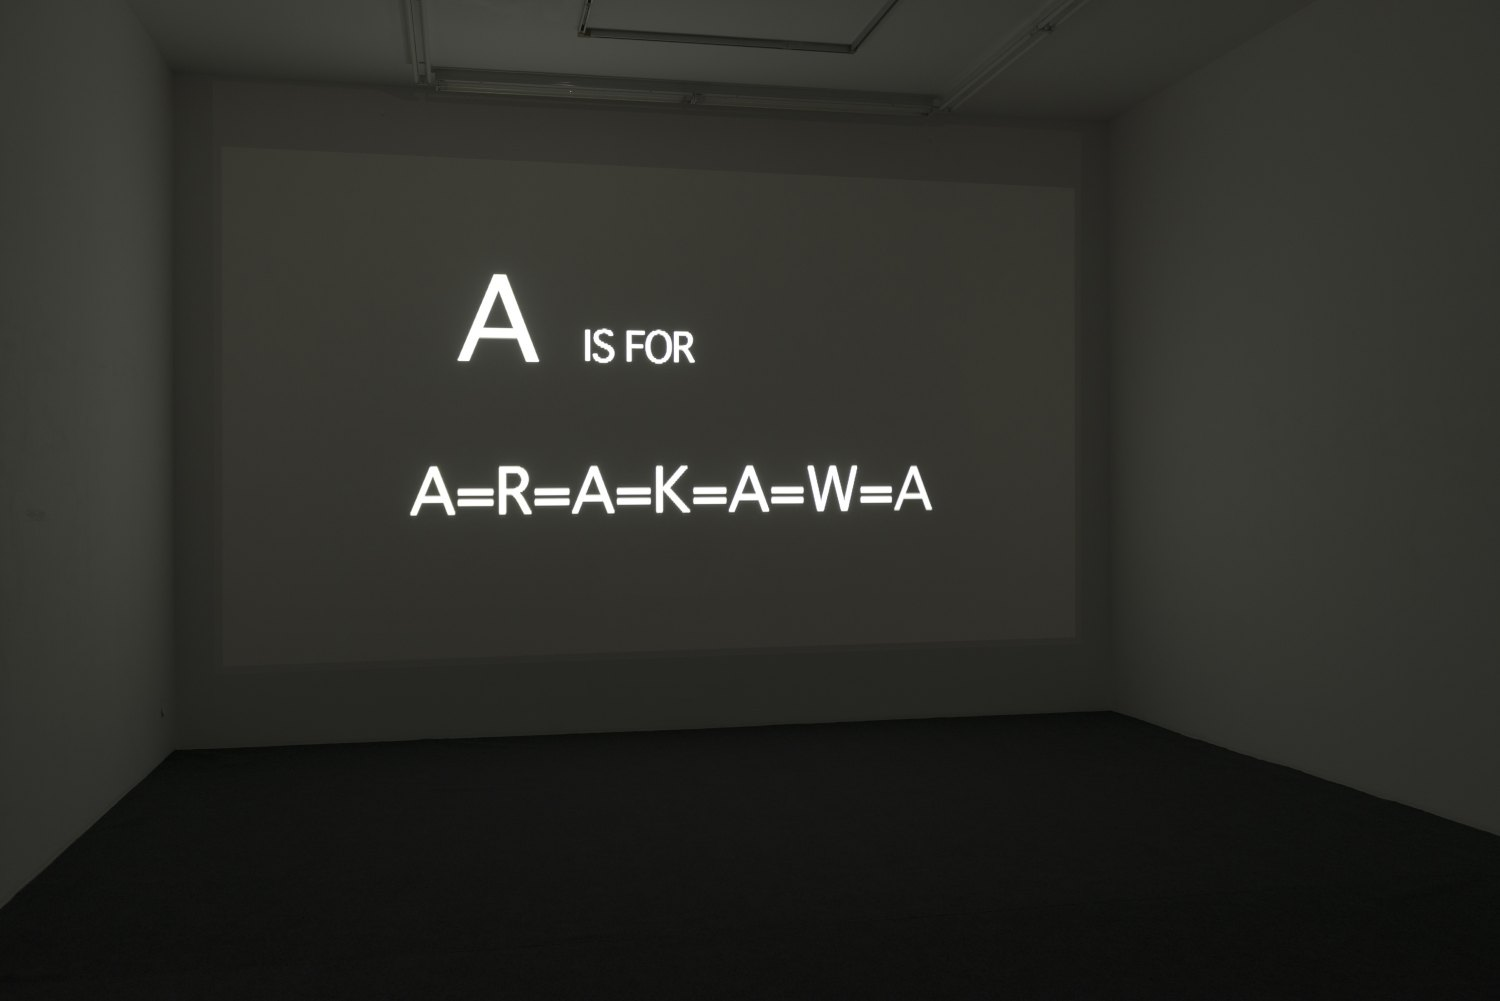 Karl Holmqvist A is for A=R=A=K=A=W=A, 2012 Single channel video, black and white, sound, 46:57 min